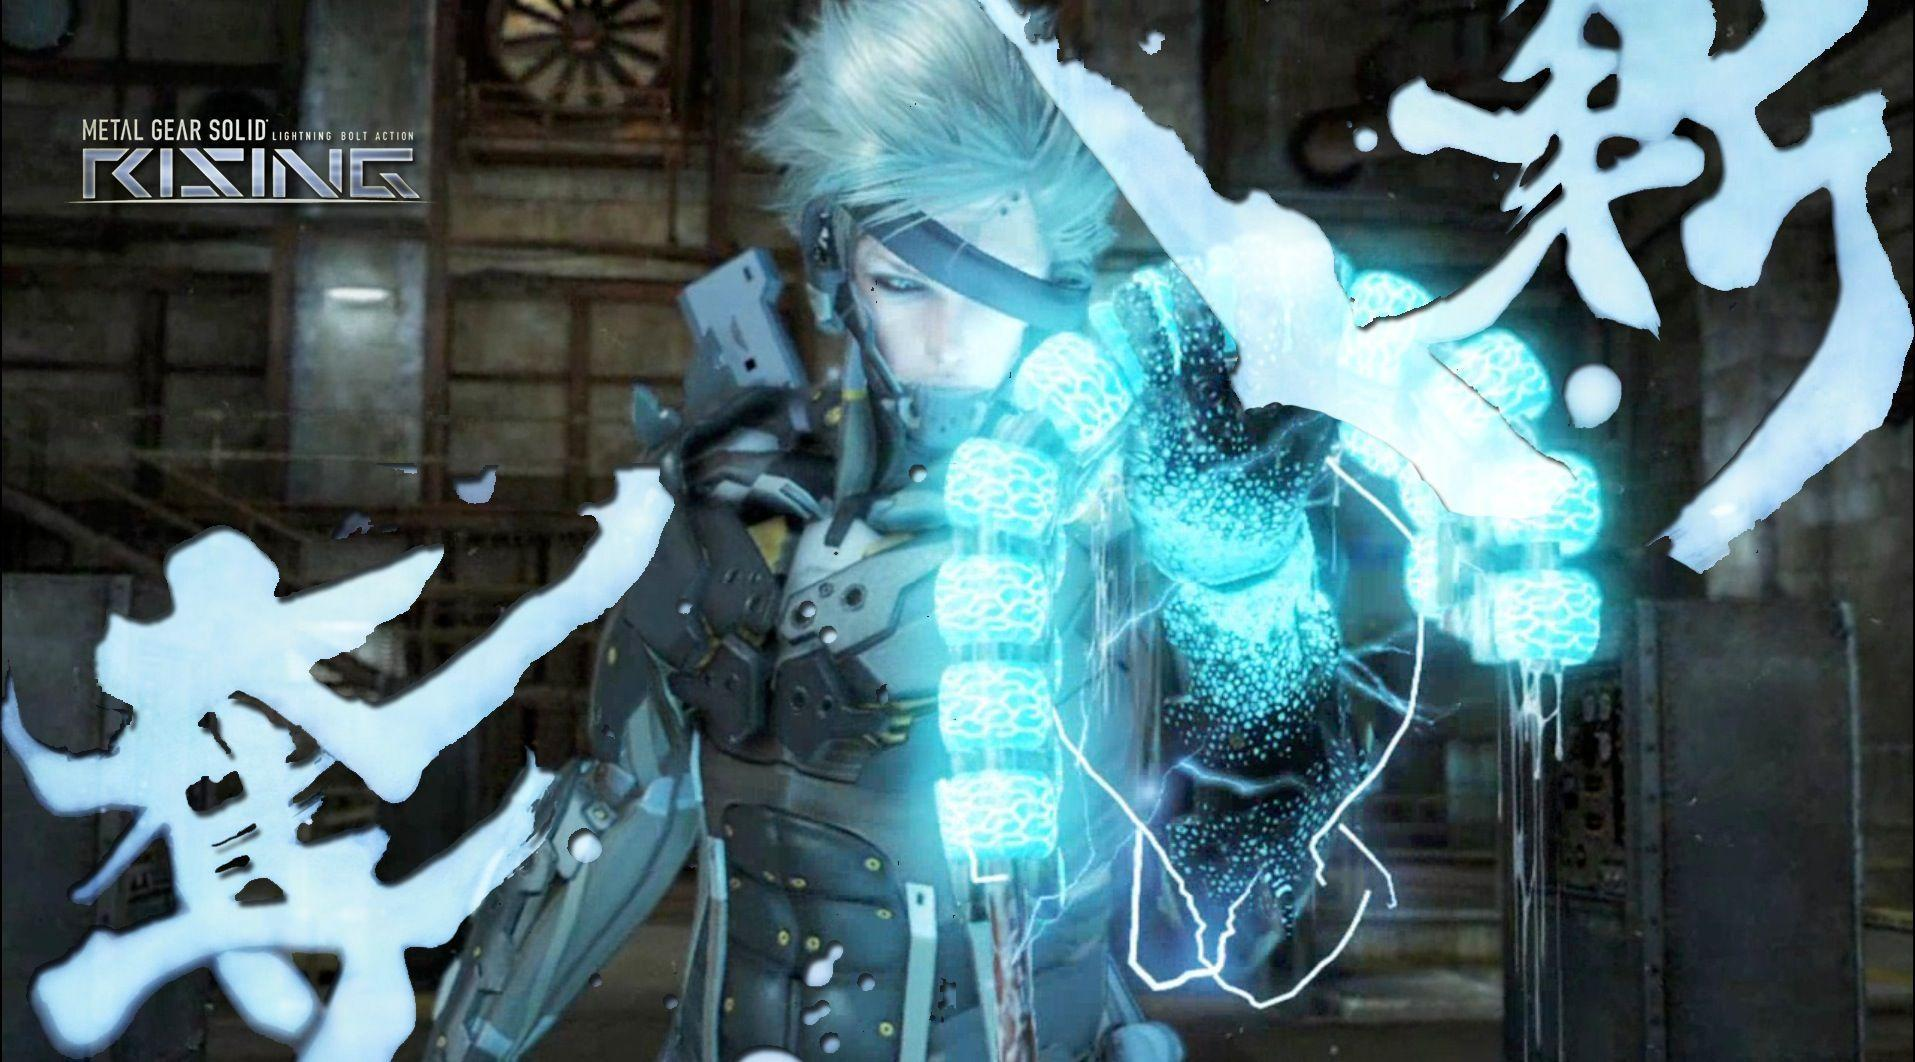 Metal gear solid rising wallpapers wallpaper cave metal gear rising wallpapers hd wallpapers base voltagebd Image collections